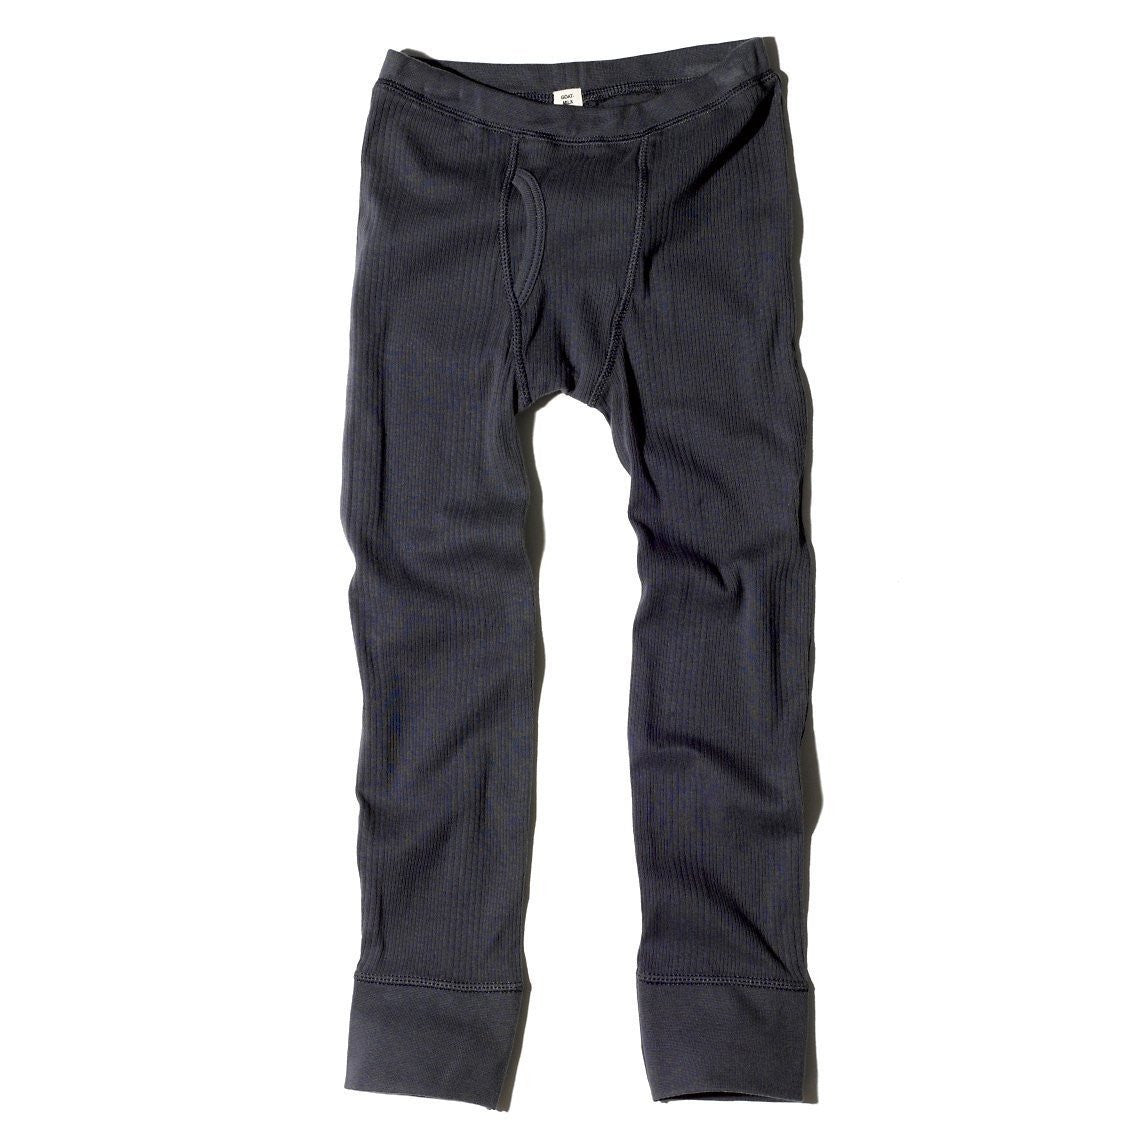 Goat-Milk Goat-Milk Boys Ribbed Thermal Bottoms - fawn&forest